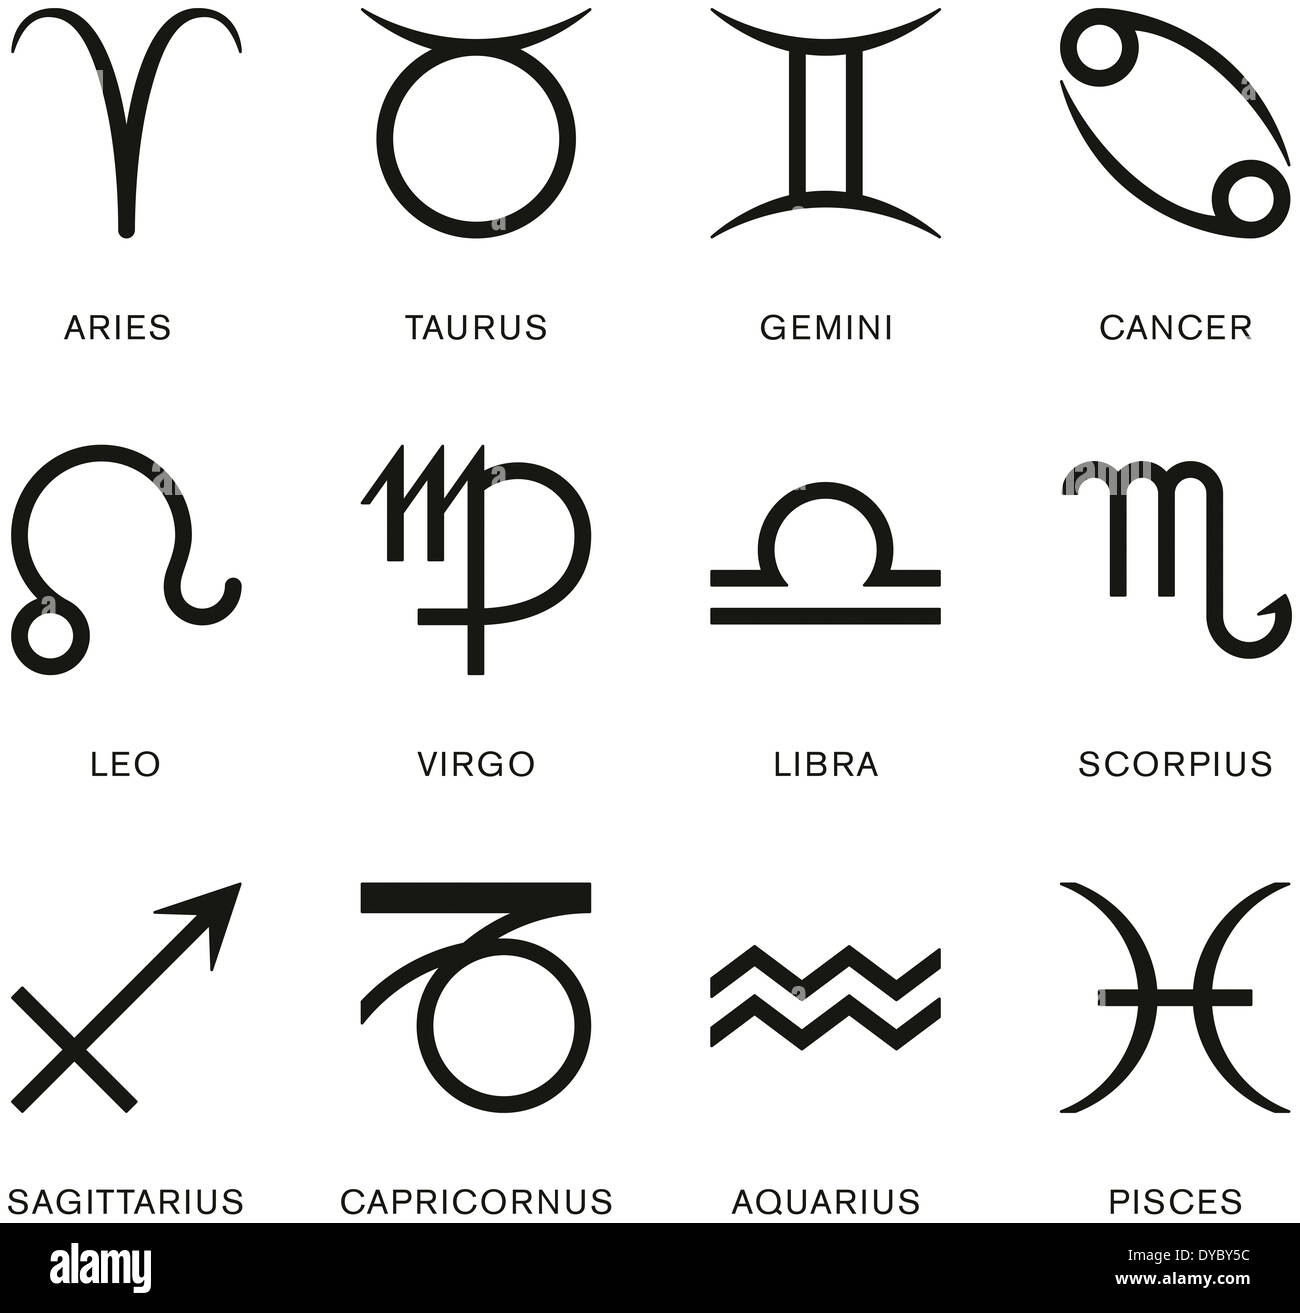 Signs Of The Zodiac - Stock Image